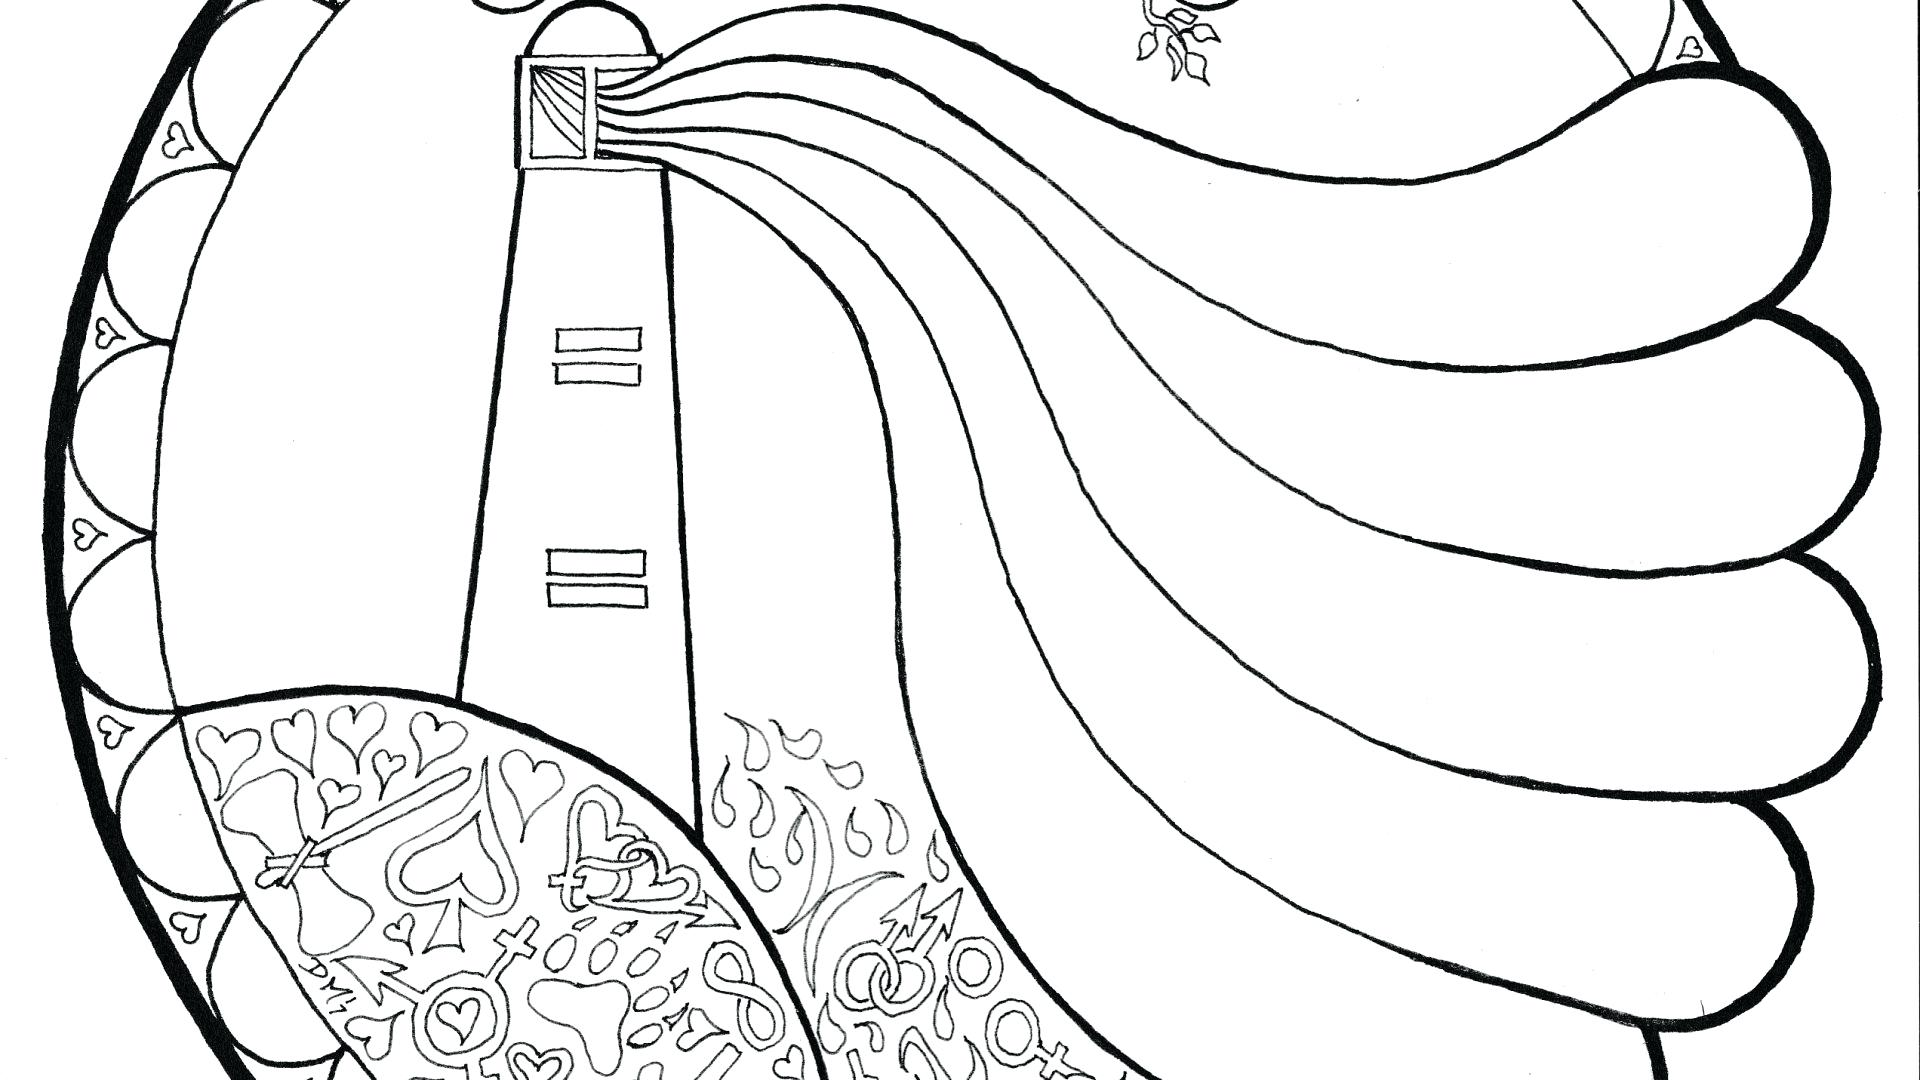 1920x1080 coloring Lighthouse Coloring Page